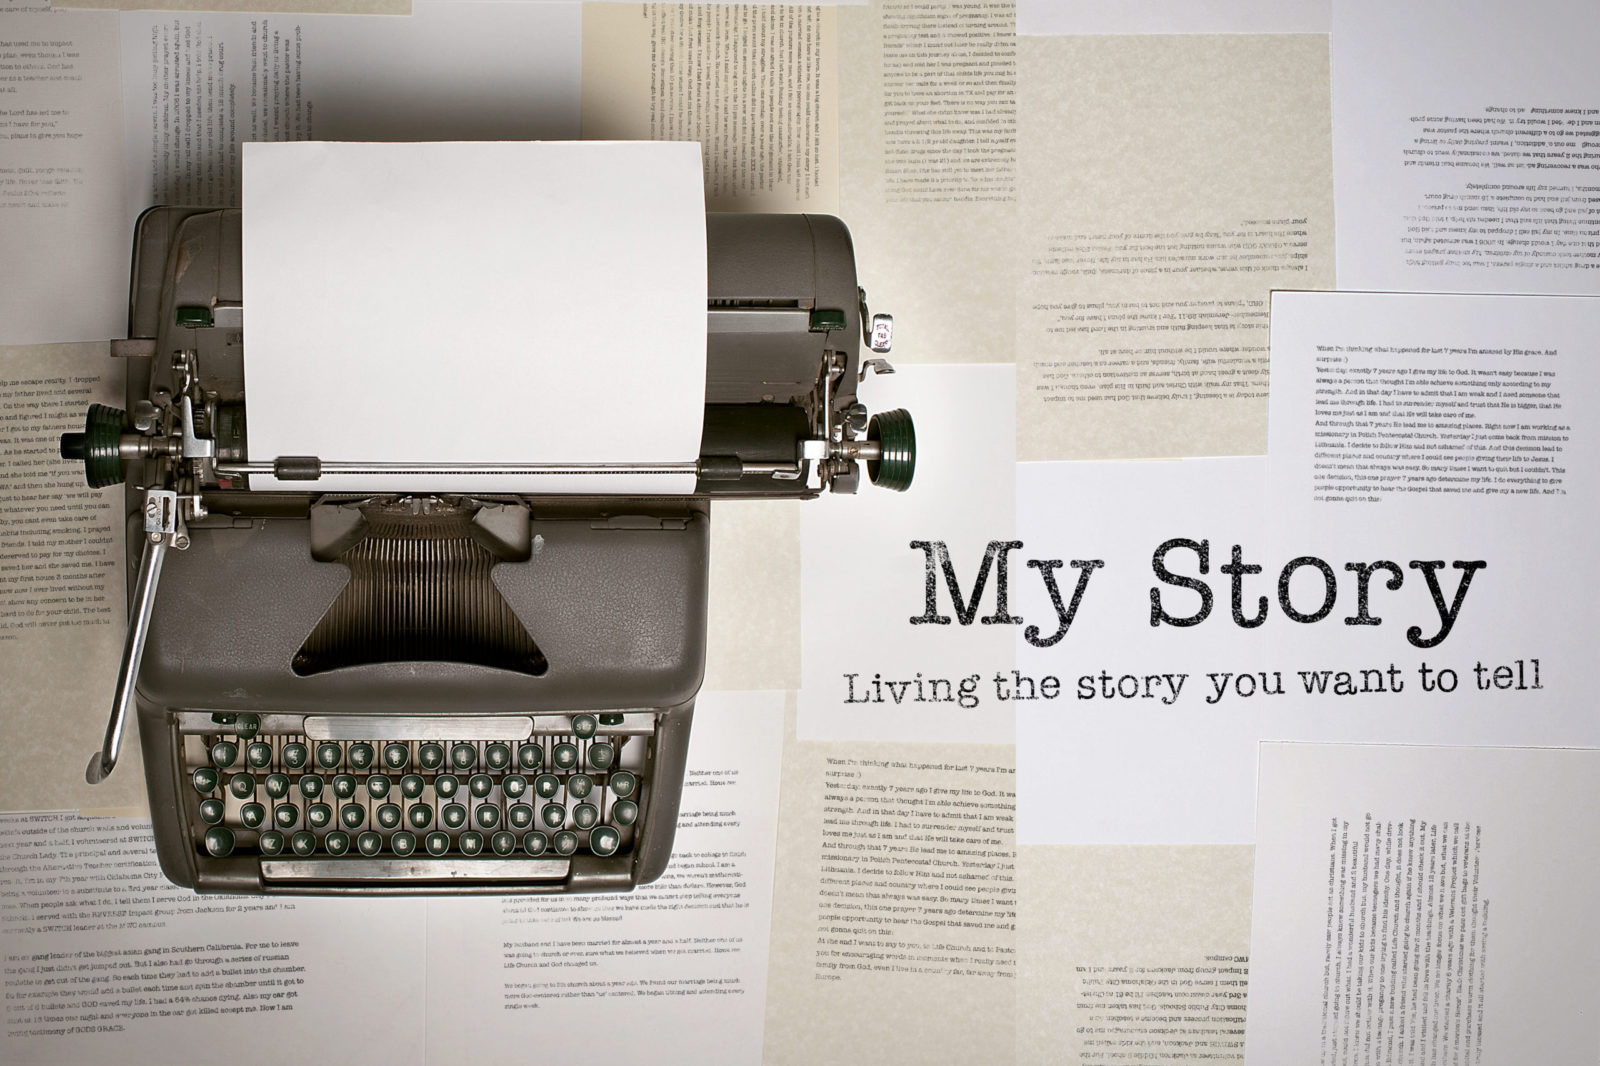 My Story: Living the story you want to tell